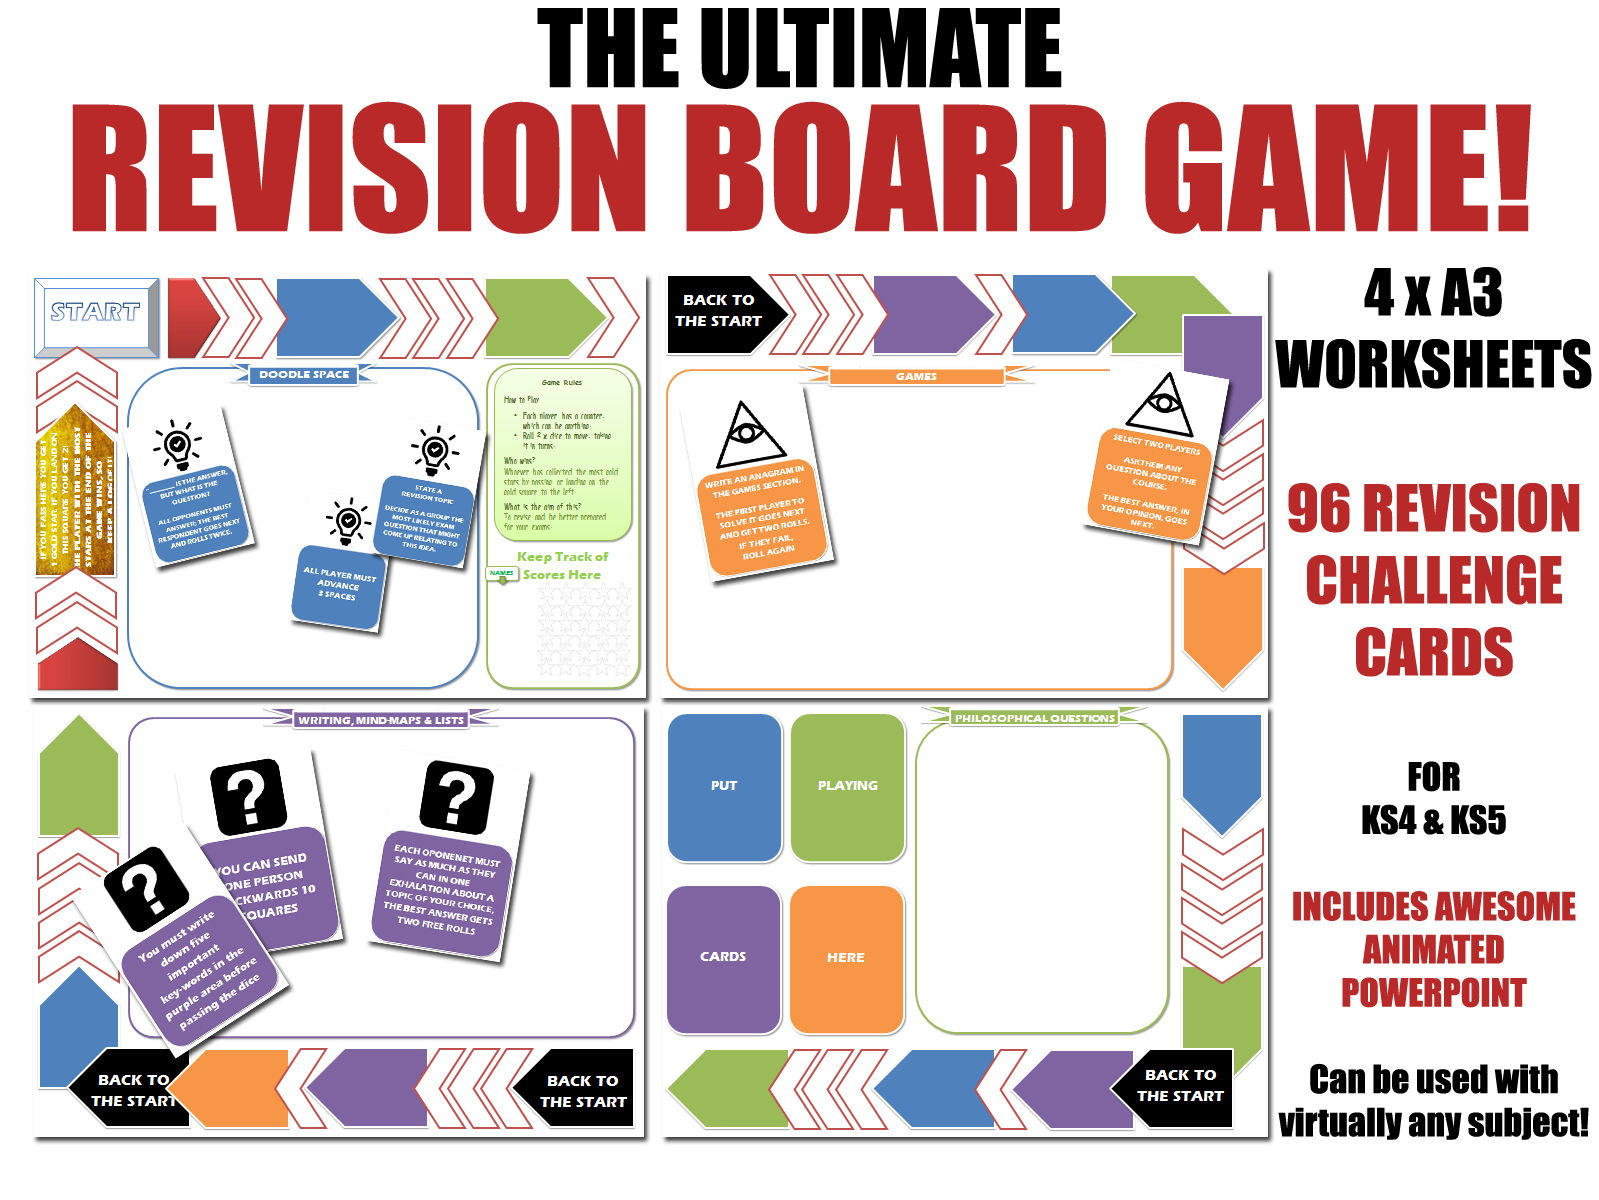 KS5 REVISION BOARD GAMES